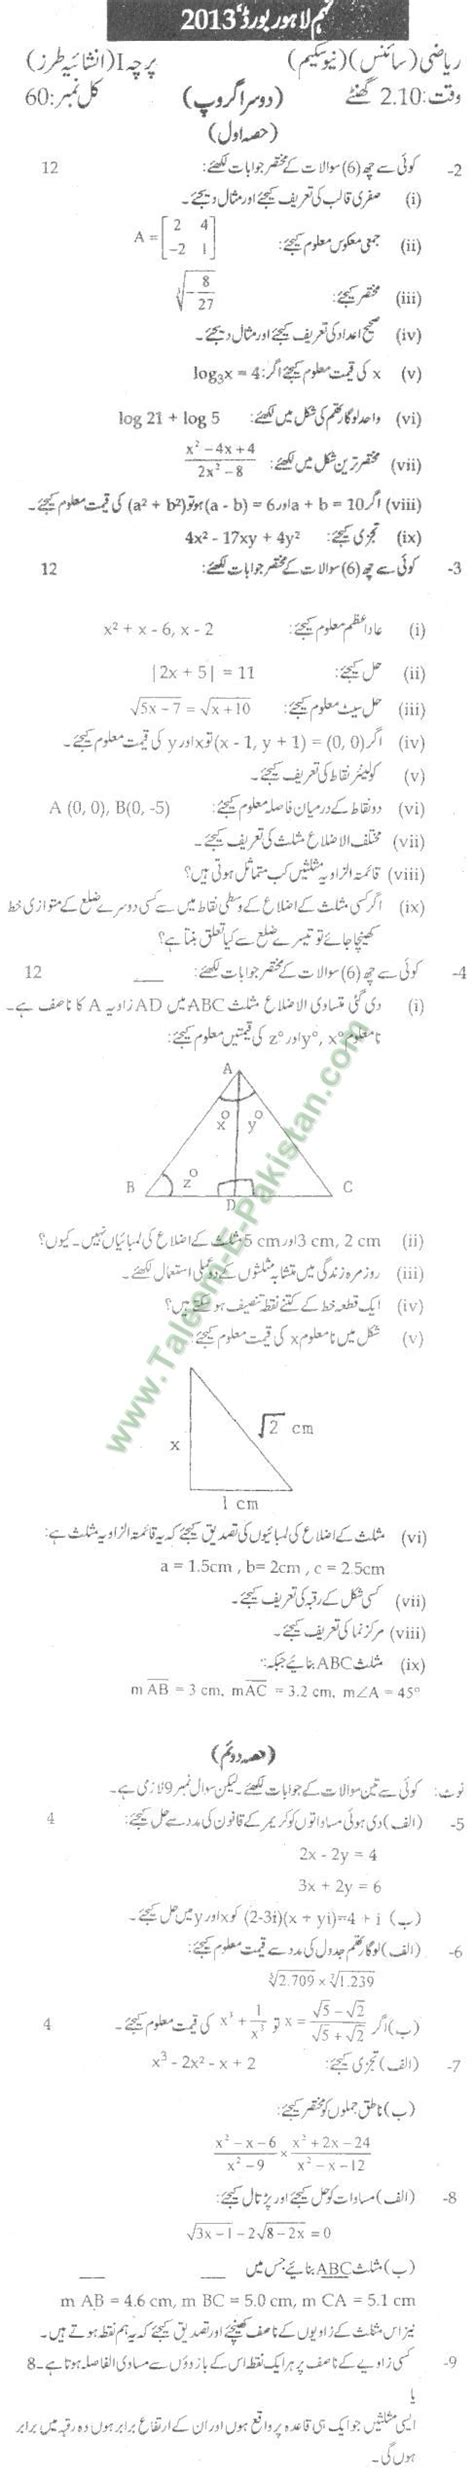 lahore board 10th class math old paper last 5 year old math past papers 9th class lahore board 2013 pakistan